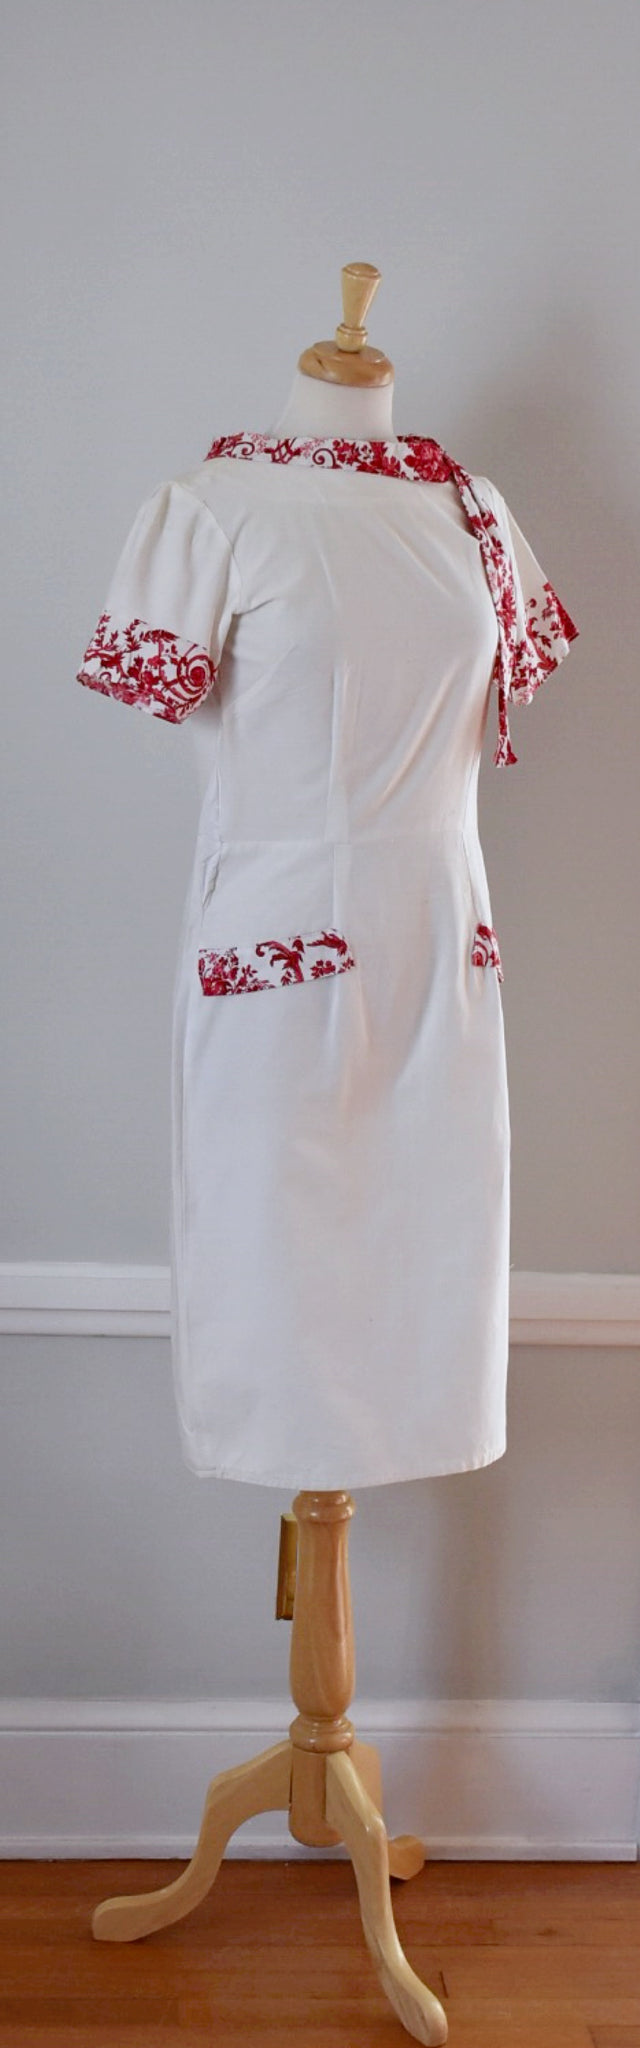 60s Vintage White Cotton Sheath Dress